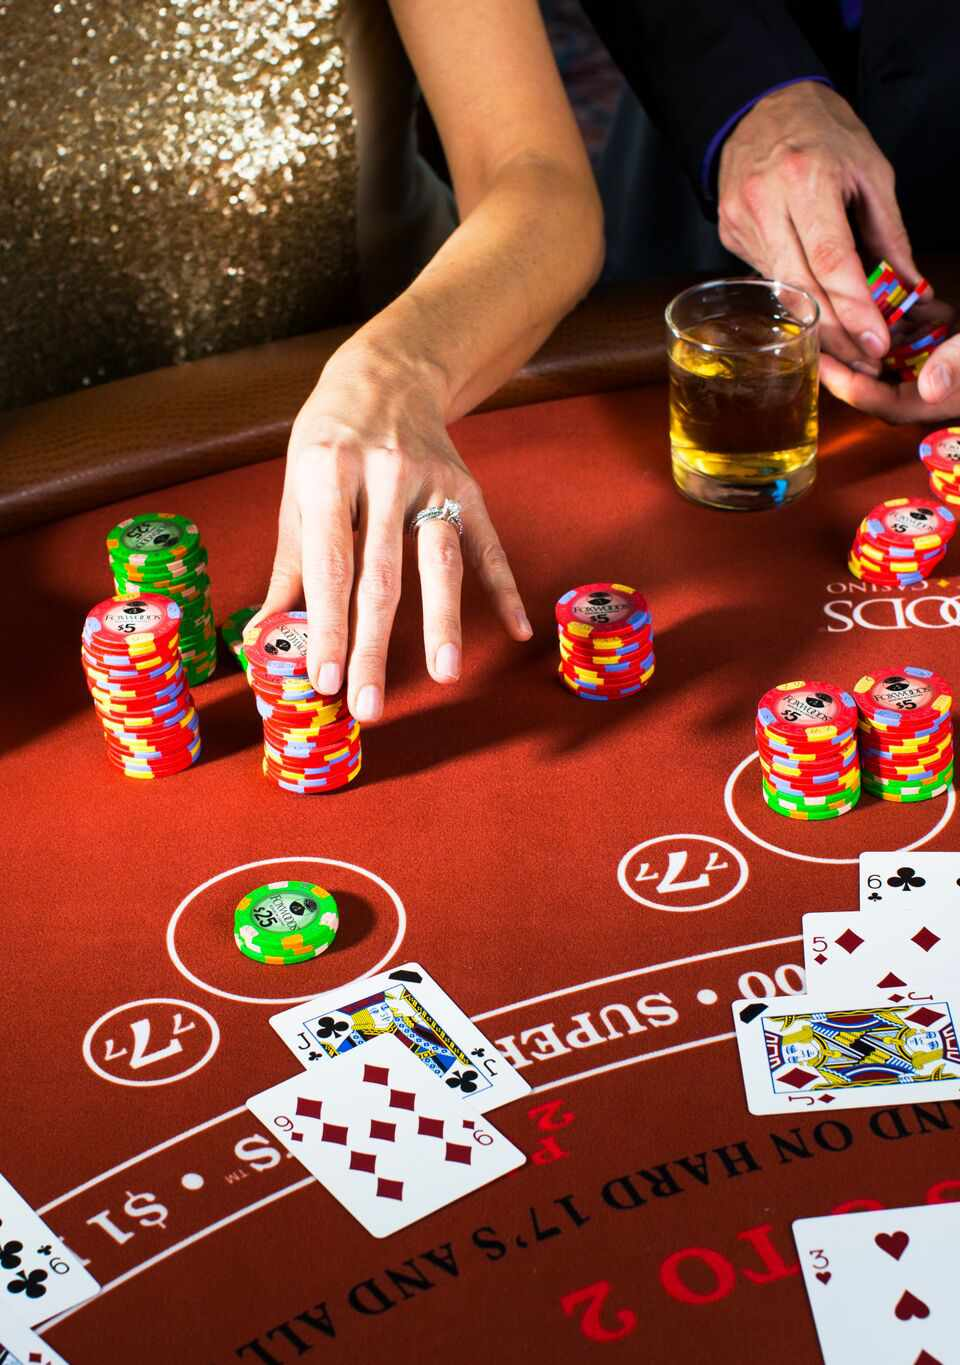 Blackjack being played at Foxwoods casino